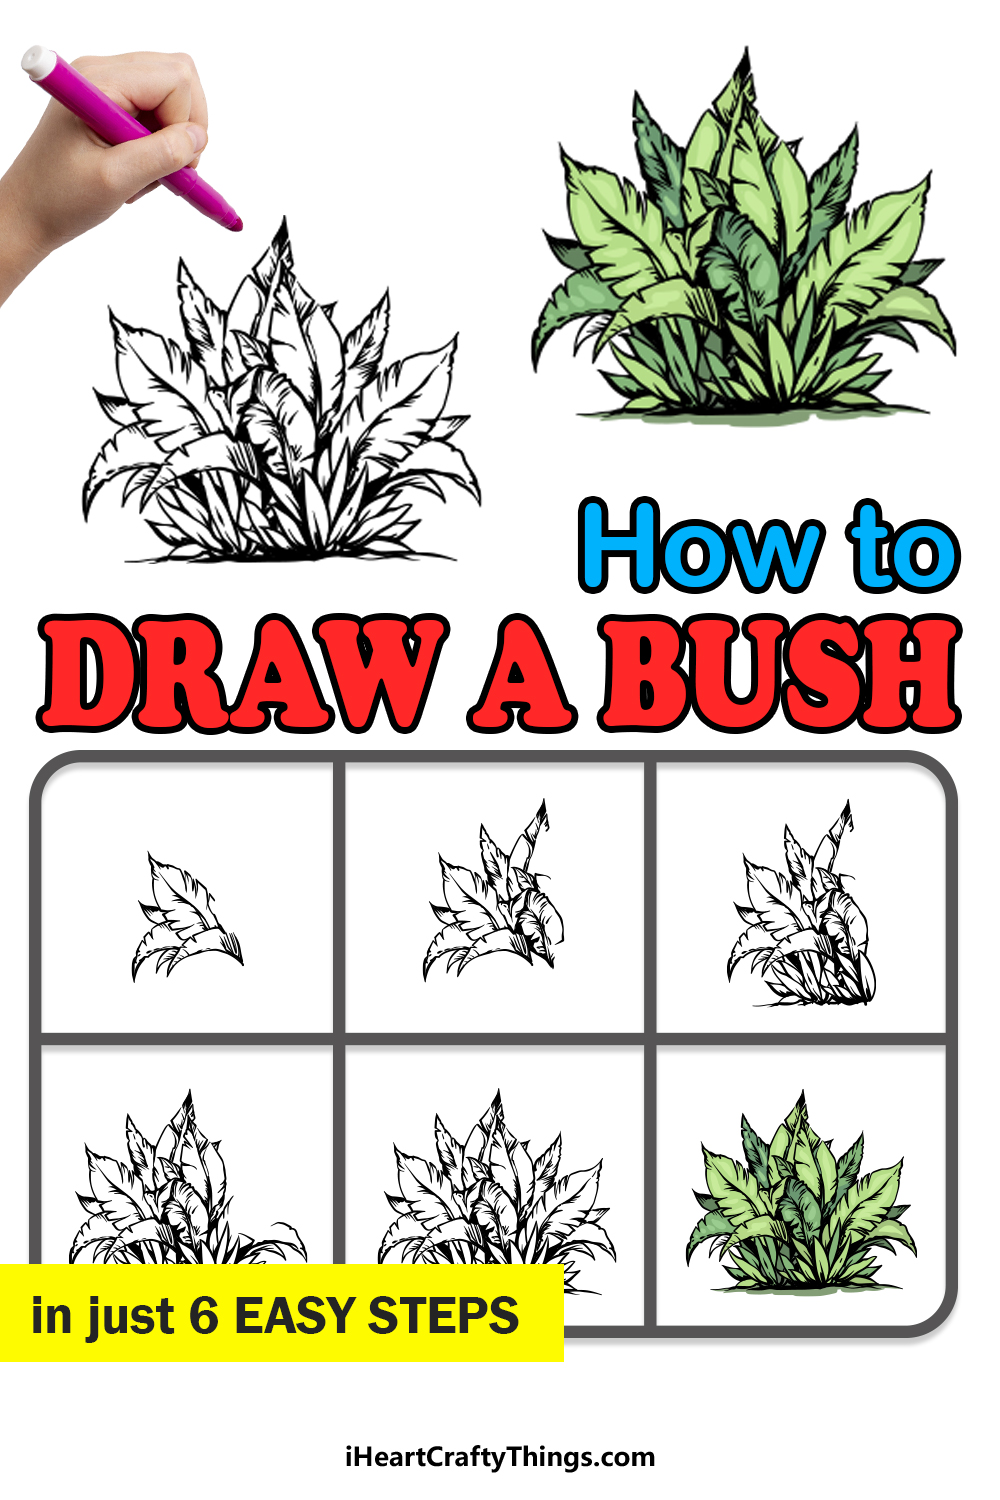 how to draw a bush in 6 easy steps